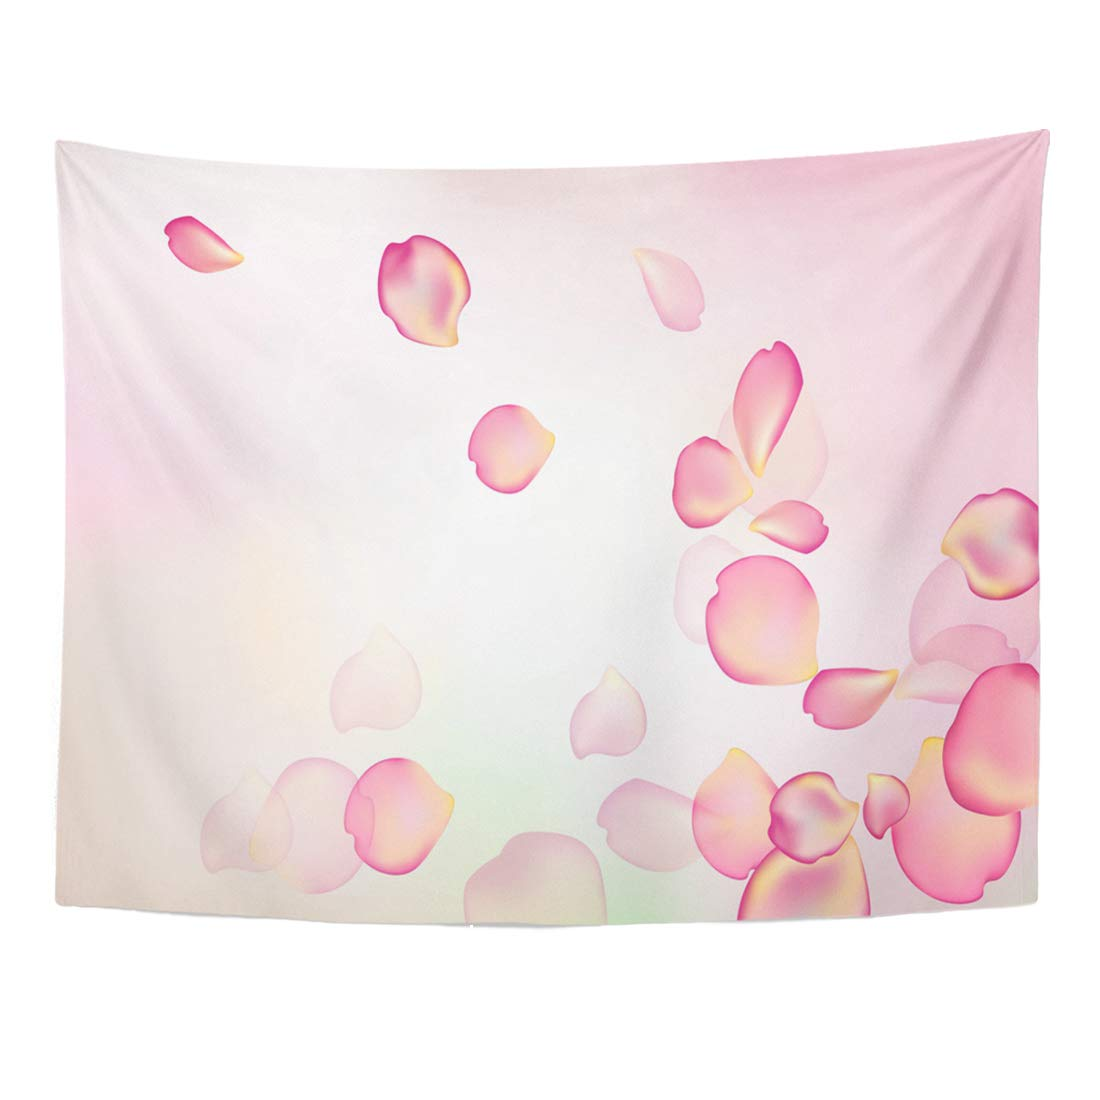 Emvency Tapestry 60 x 50 Inches Pink Romantic Blurred Pastel with Rose Purple Petal Spa Beauty Love White Light Floral Home Decor Tapestries Wall Hangings Art for Living Room Bedroom Dorm